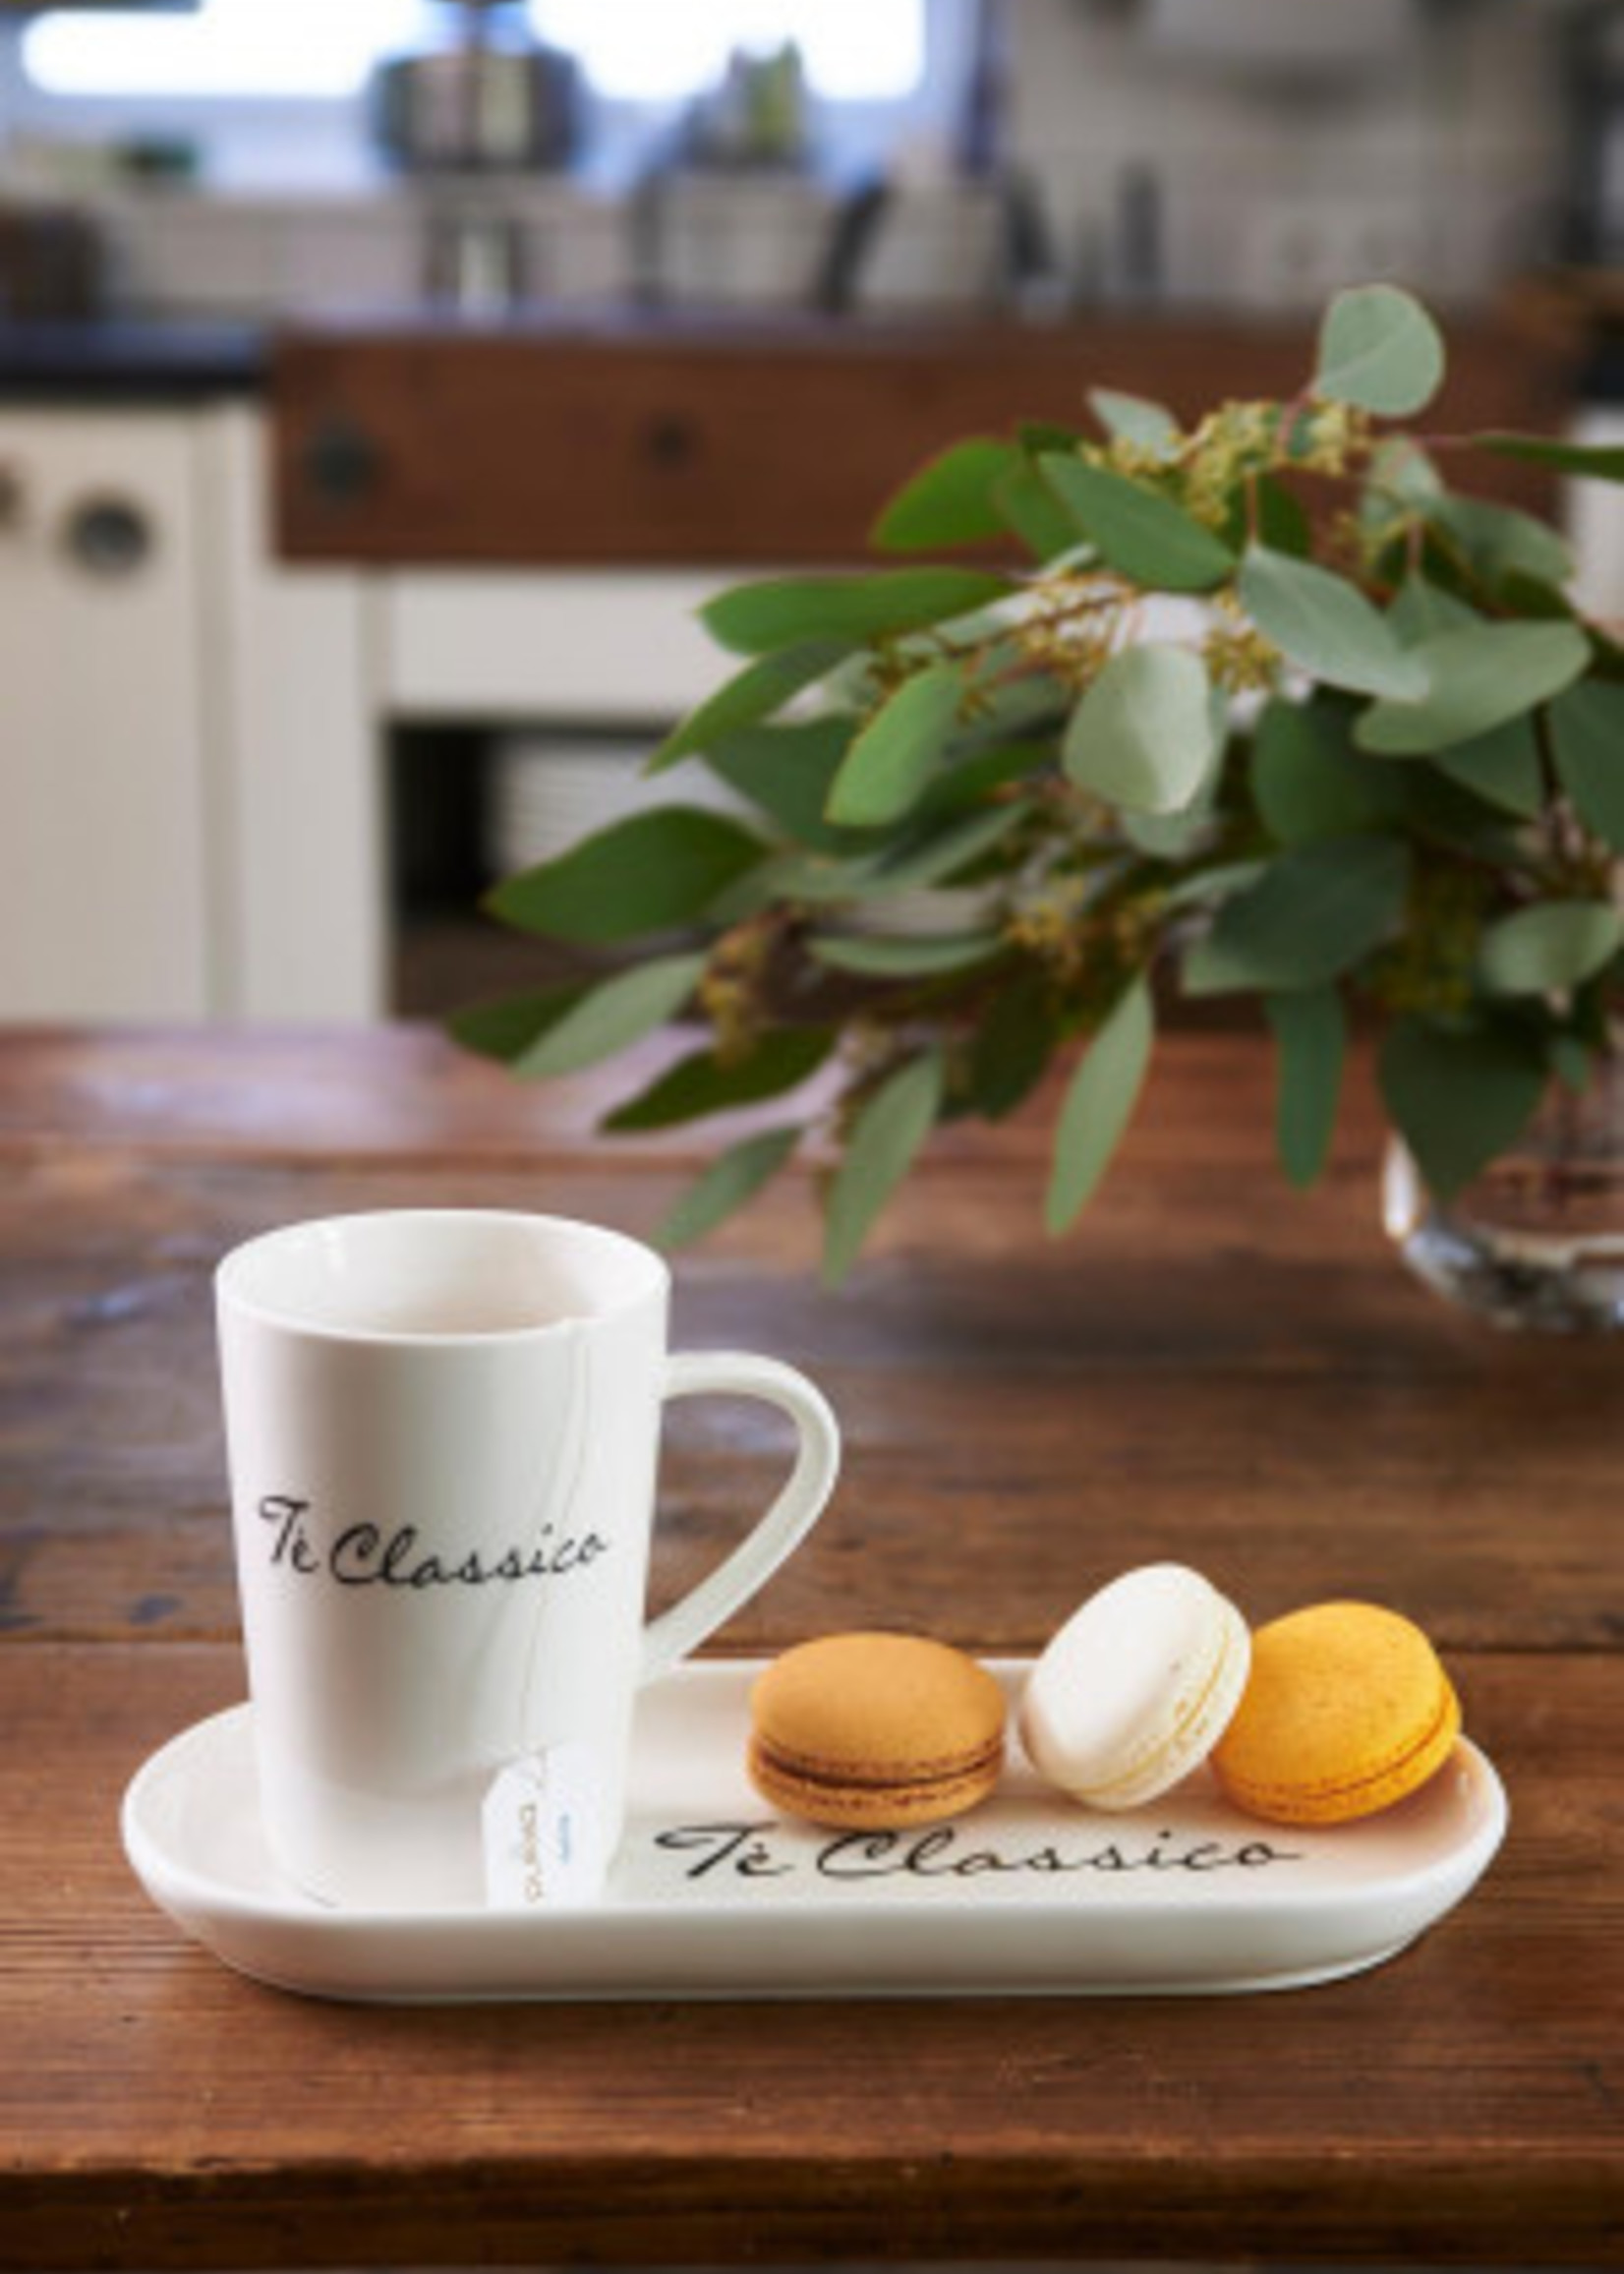 Riviera Maison Te Classico Cup and Saucer